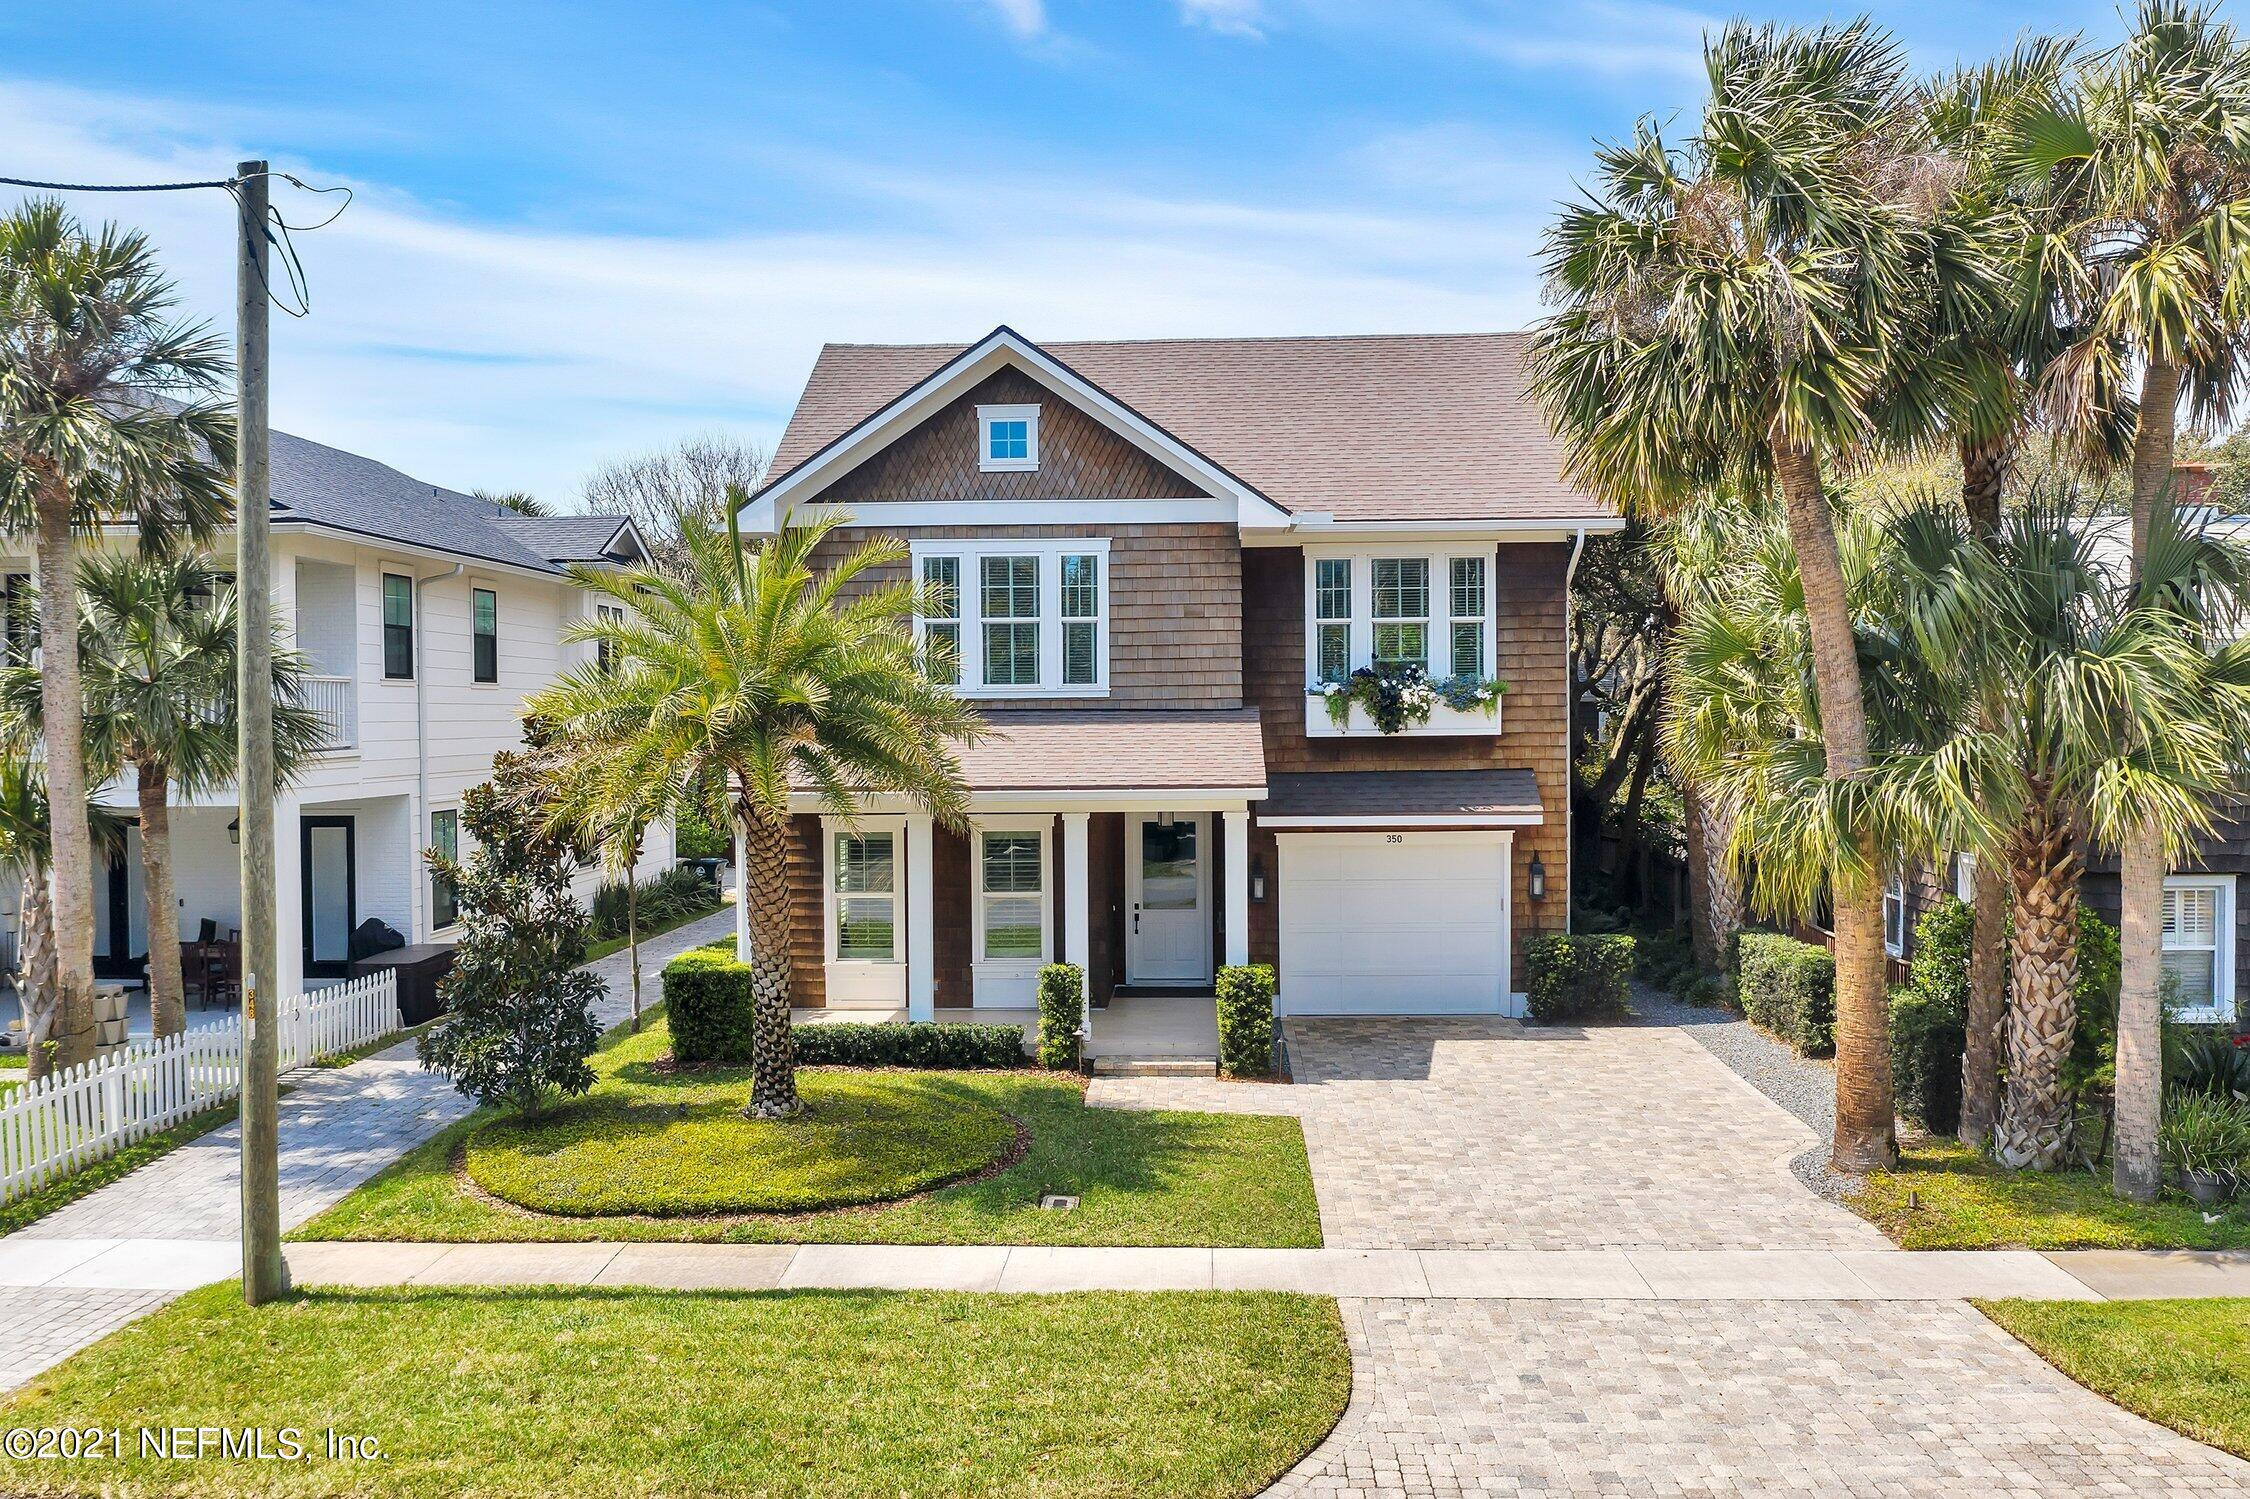 Welcome to this recently built custom cottage-style home in the heart of old Atlantic Beach. One of the most coveted locations within a vibrant community, this home is just one short block from the beach and three short blocks to the Beaches Town Center. For those looking for a walkable neighborhood, the next owners of this home can walk to local open-air coffee shops, cafes, and bars all year long. The open floor plan features a spacious kitchen and great room that is perfect for hosting friends and family. Interior features include 10' ceilings on the first floor, custom stair railing, inset fully custom all-wood Shiloh cabinets, high-end Wolf/Sub Zero appliances including a 146-bottle built-in wine refrigerator with dual climate zones, oversized quartz waterfall island, butler's pantry, separate dining room, beautiful wood floors throughout, custom built in closets, built-in ceiling speakers, epoxy garage flooring, shiplap ceiling and wall accents and much more! Step into the backyard and feel like you are in your own private resort underneath the spacious, covered patio with a lovely built-in summer kitchen surrounded by resort-like landscaping and palm trees. Additional outdoor features include an outdoor shower, tiled front porch, mature tree canopy, wood cedar shake siding, window planter boxes, and elegant landscape lighting. 350 Ocean Blvd has it all. Come see this beautiful house for yourself and fall in love with your new home!